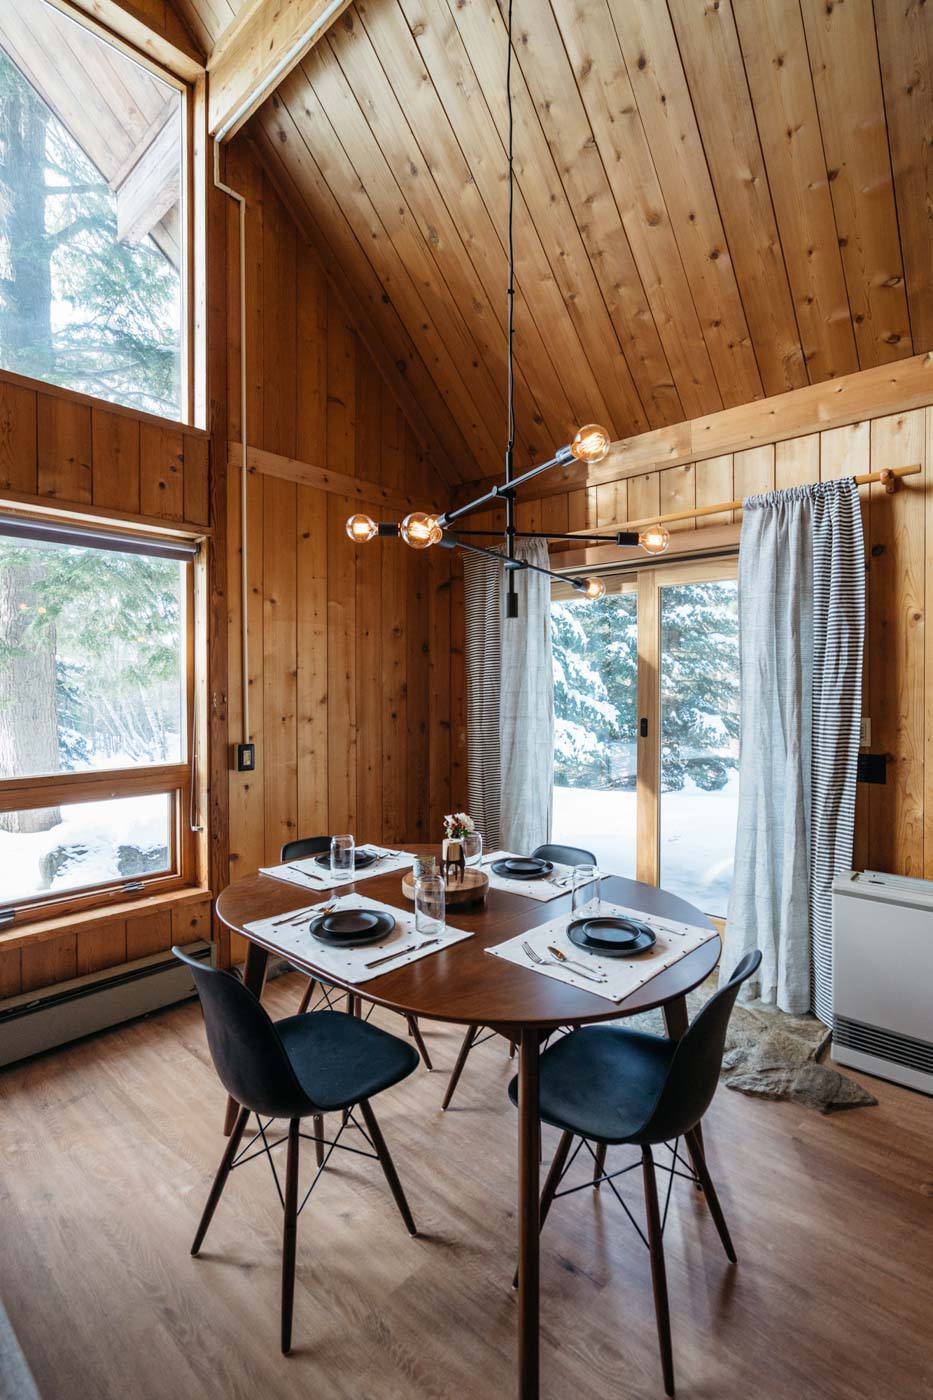 CabinGoals-WardsboroVT-natural-light-photography-studio-lifestyle-photoshoot-location-editorial-commercial-photography-3.jpg